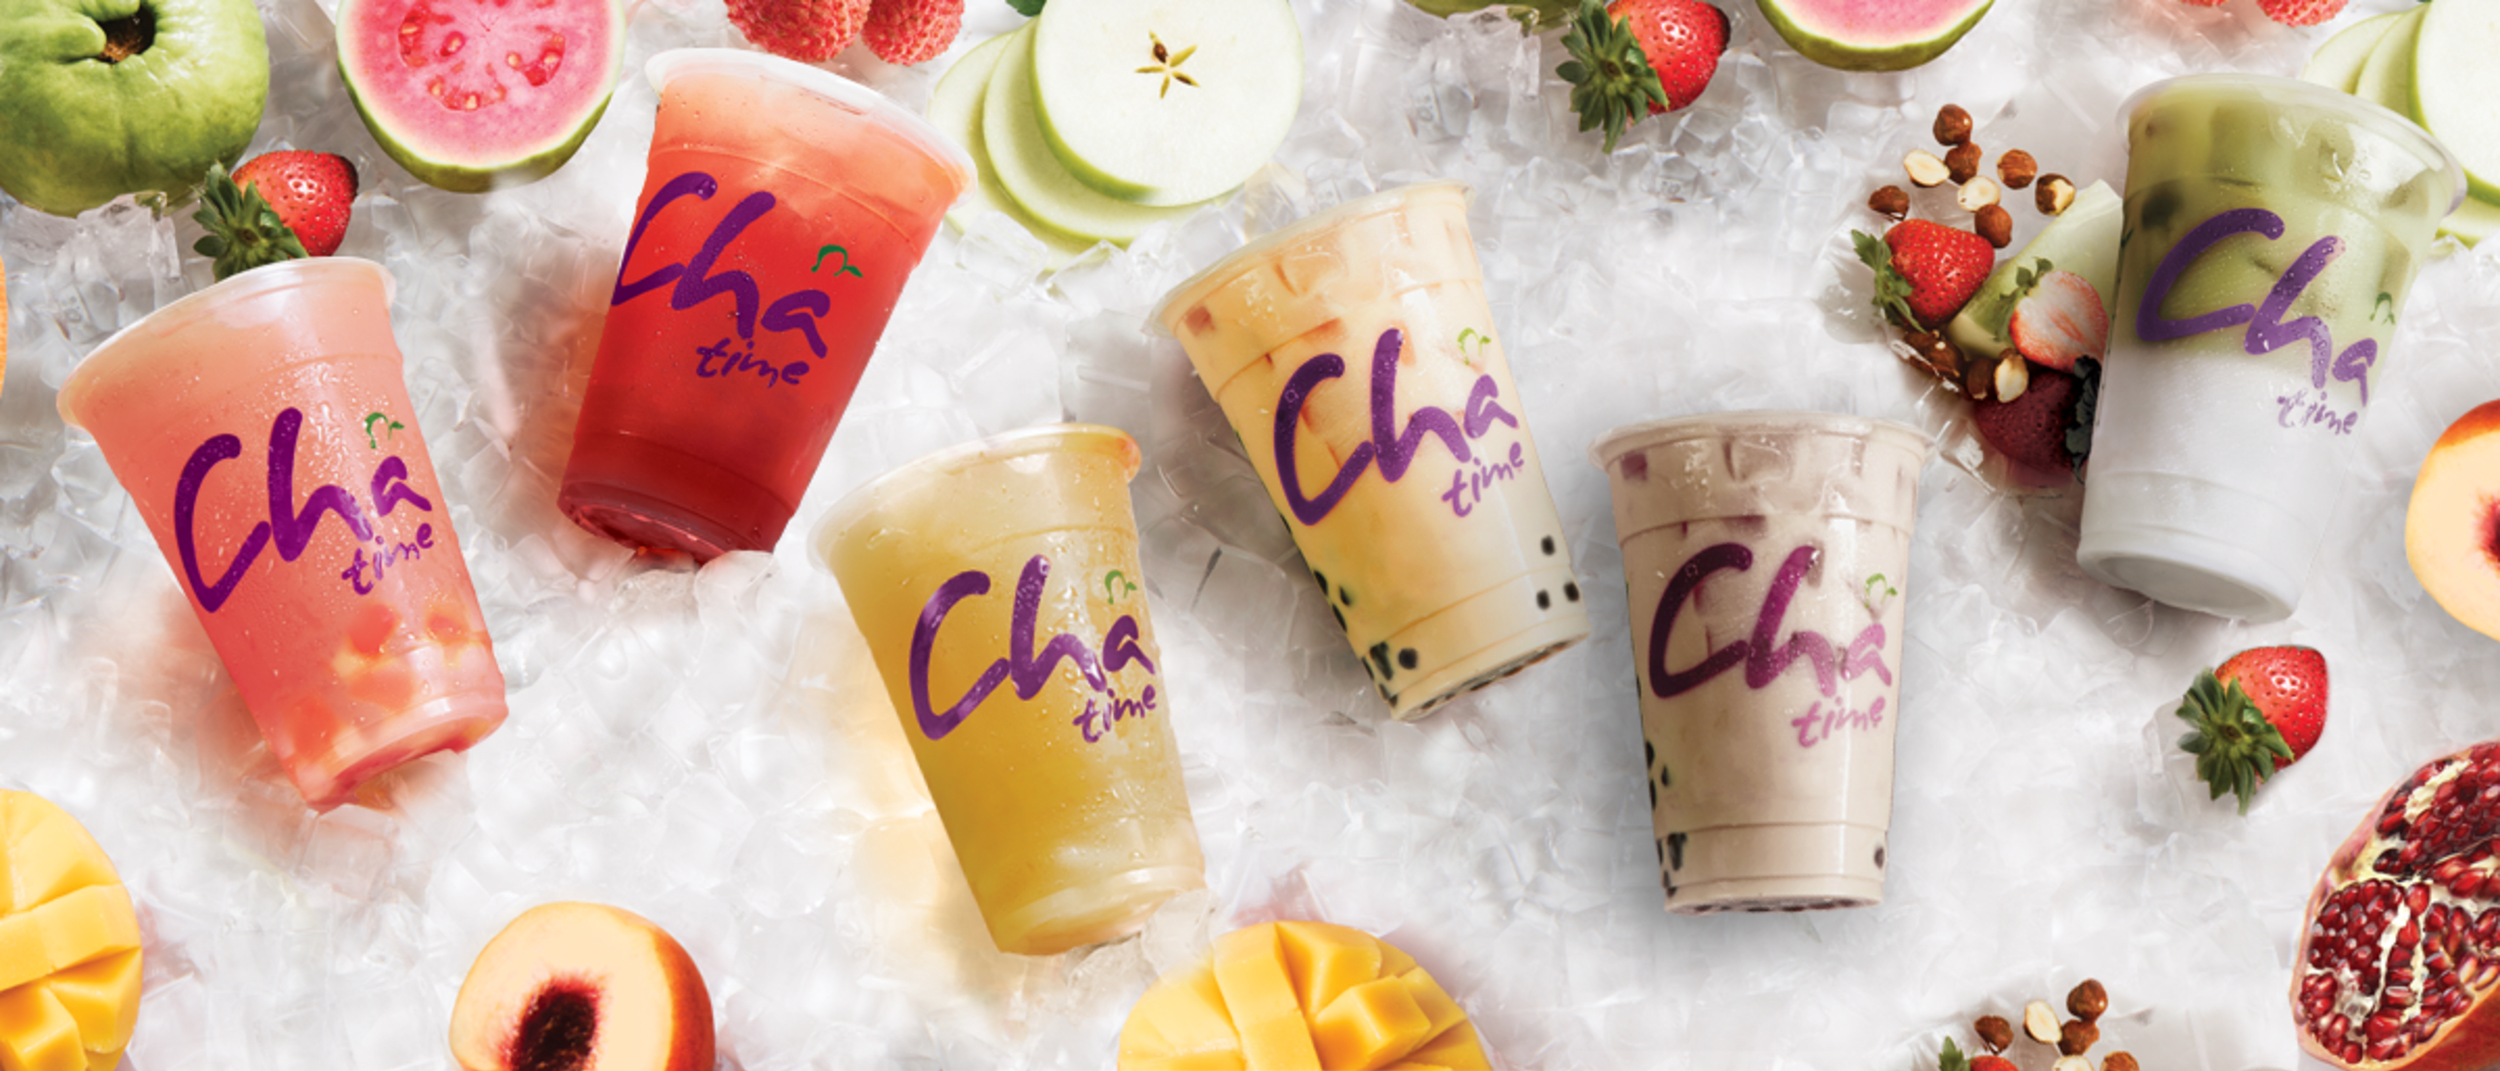 Chatime: share your 'crazy' tastes for the chance to win free tea